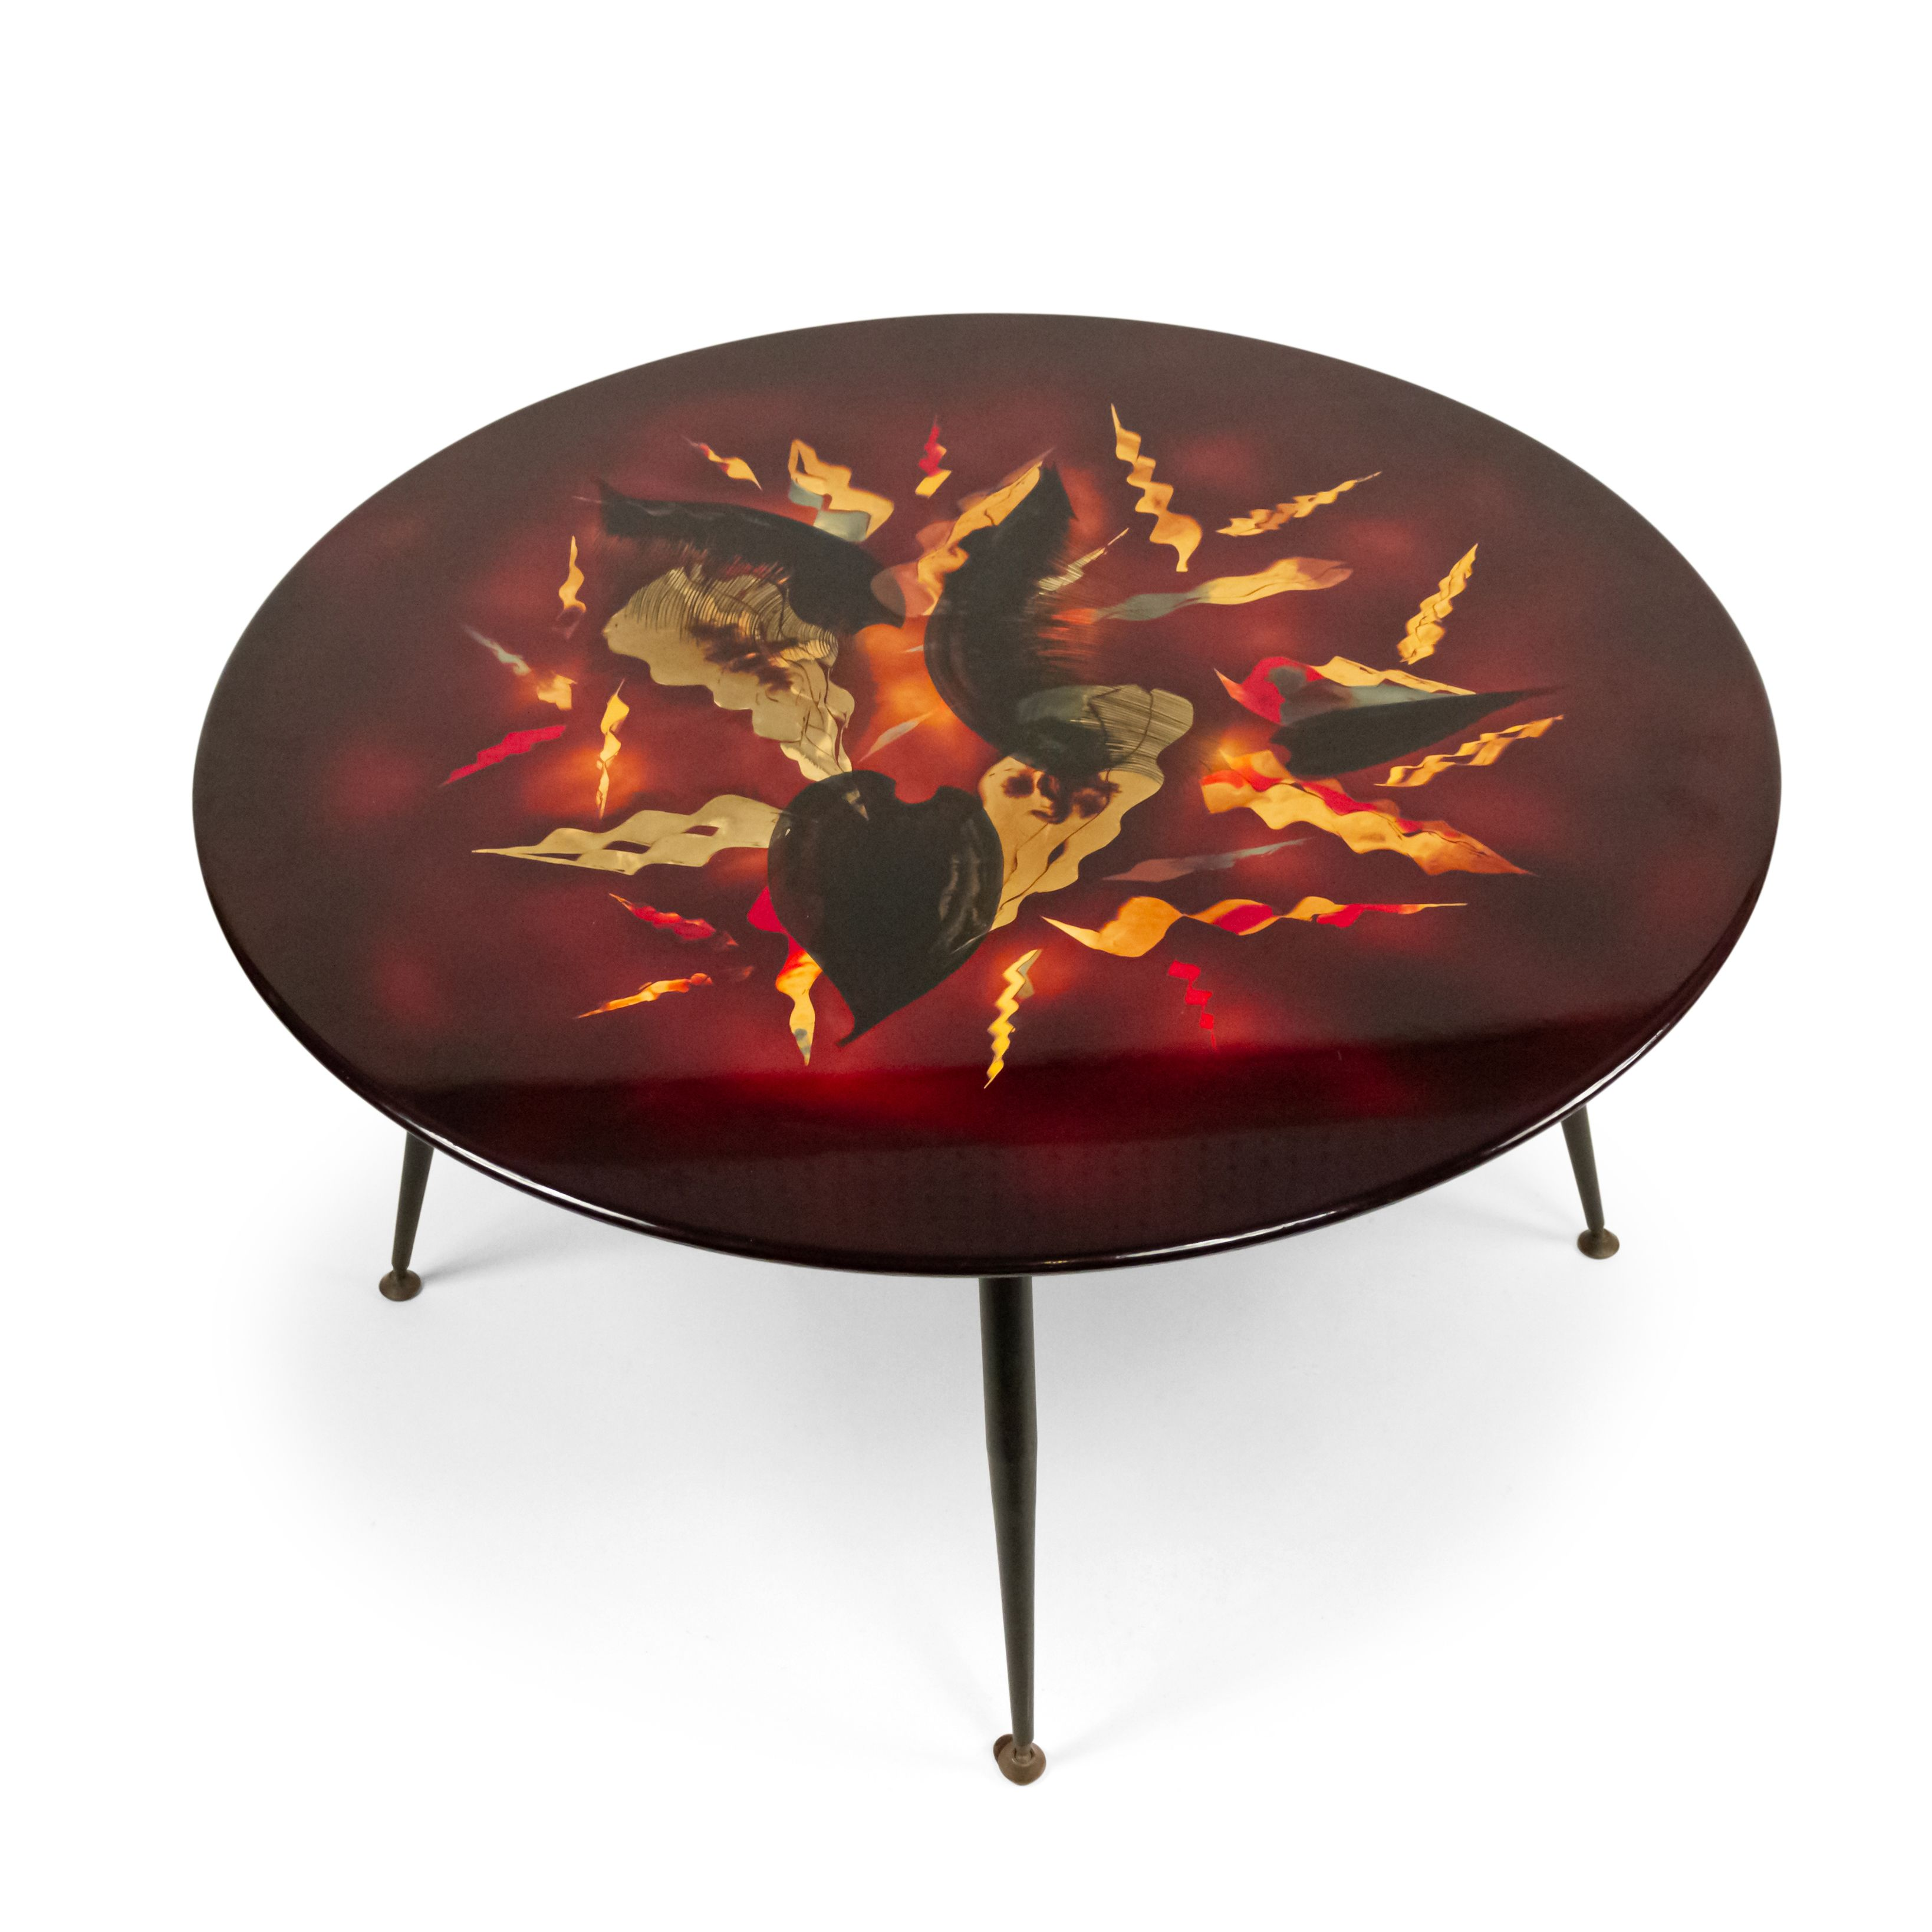 French Mid-Century Geometric Lacquered Leaf Design Coffee Table